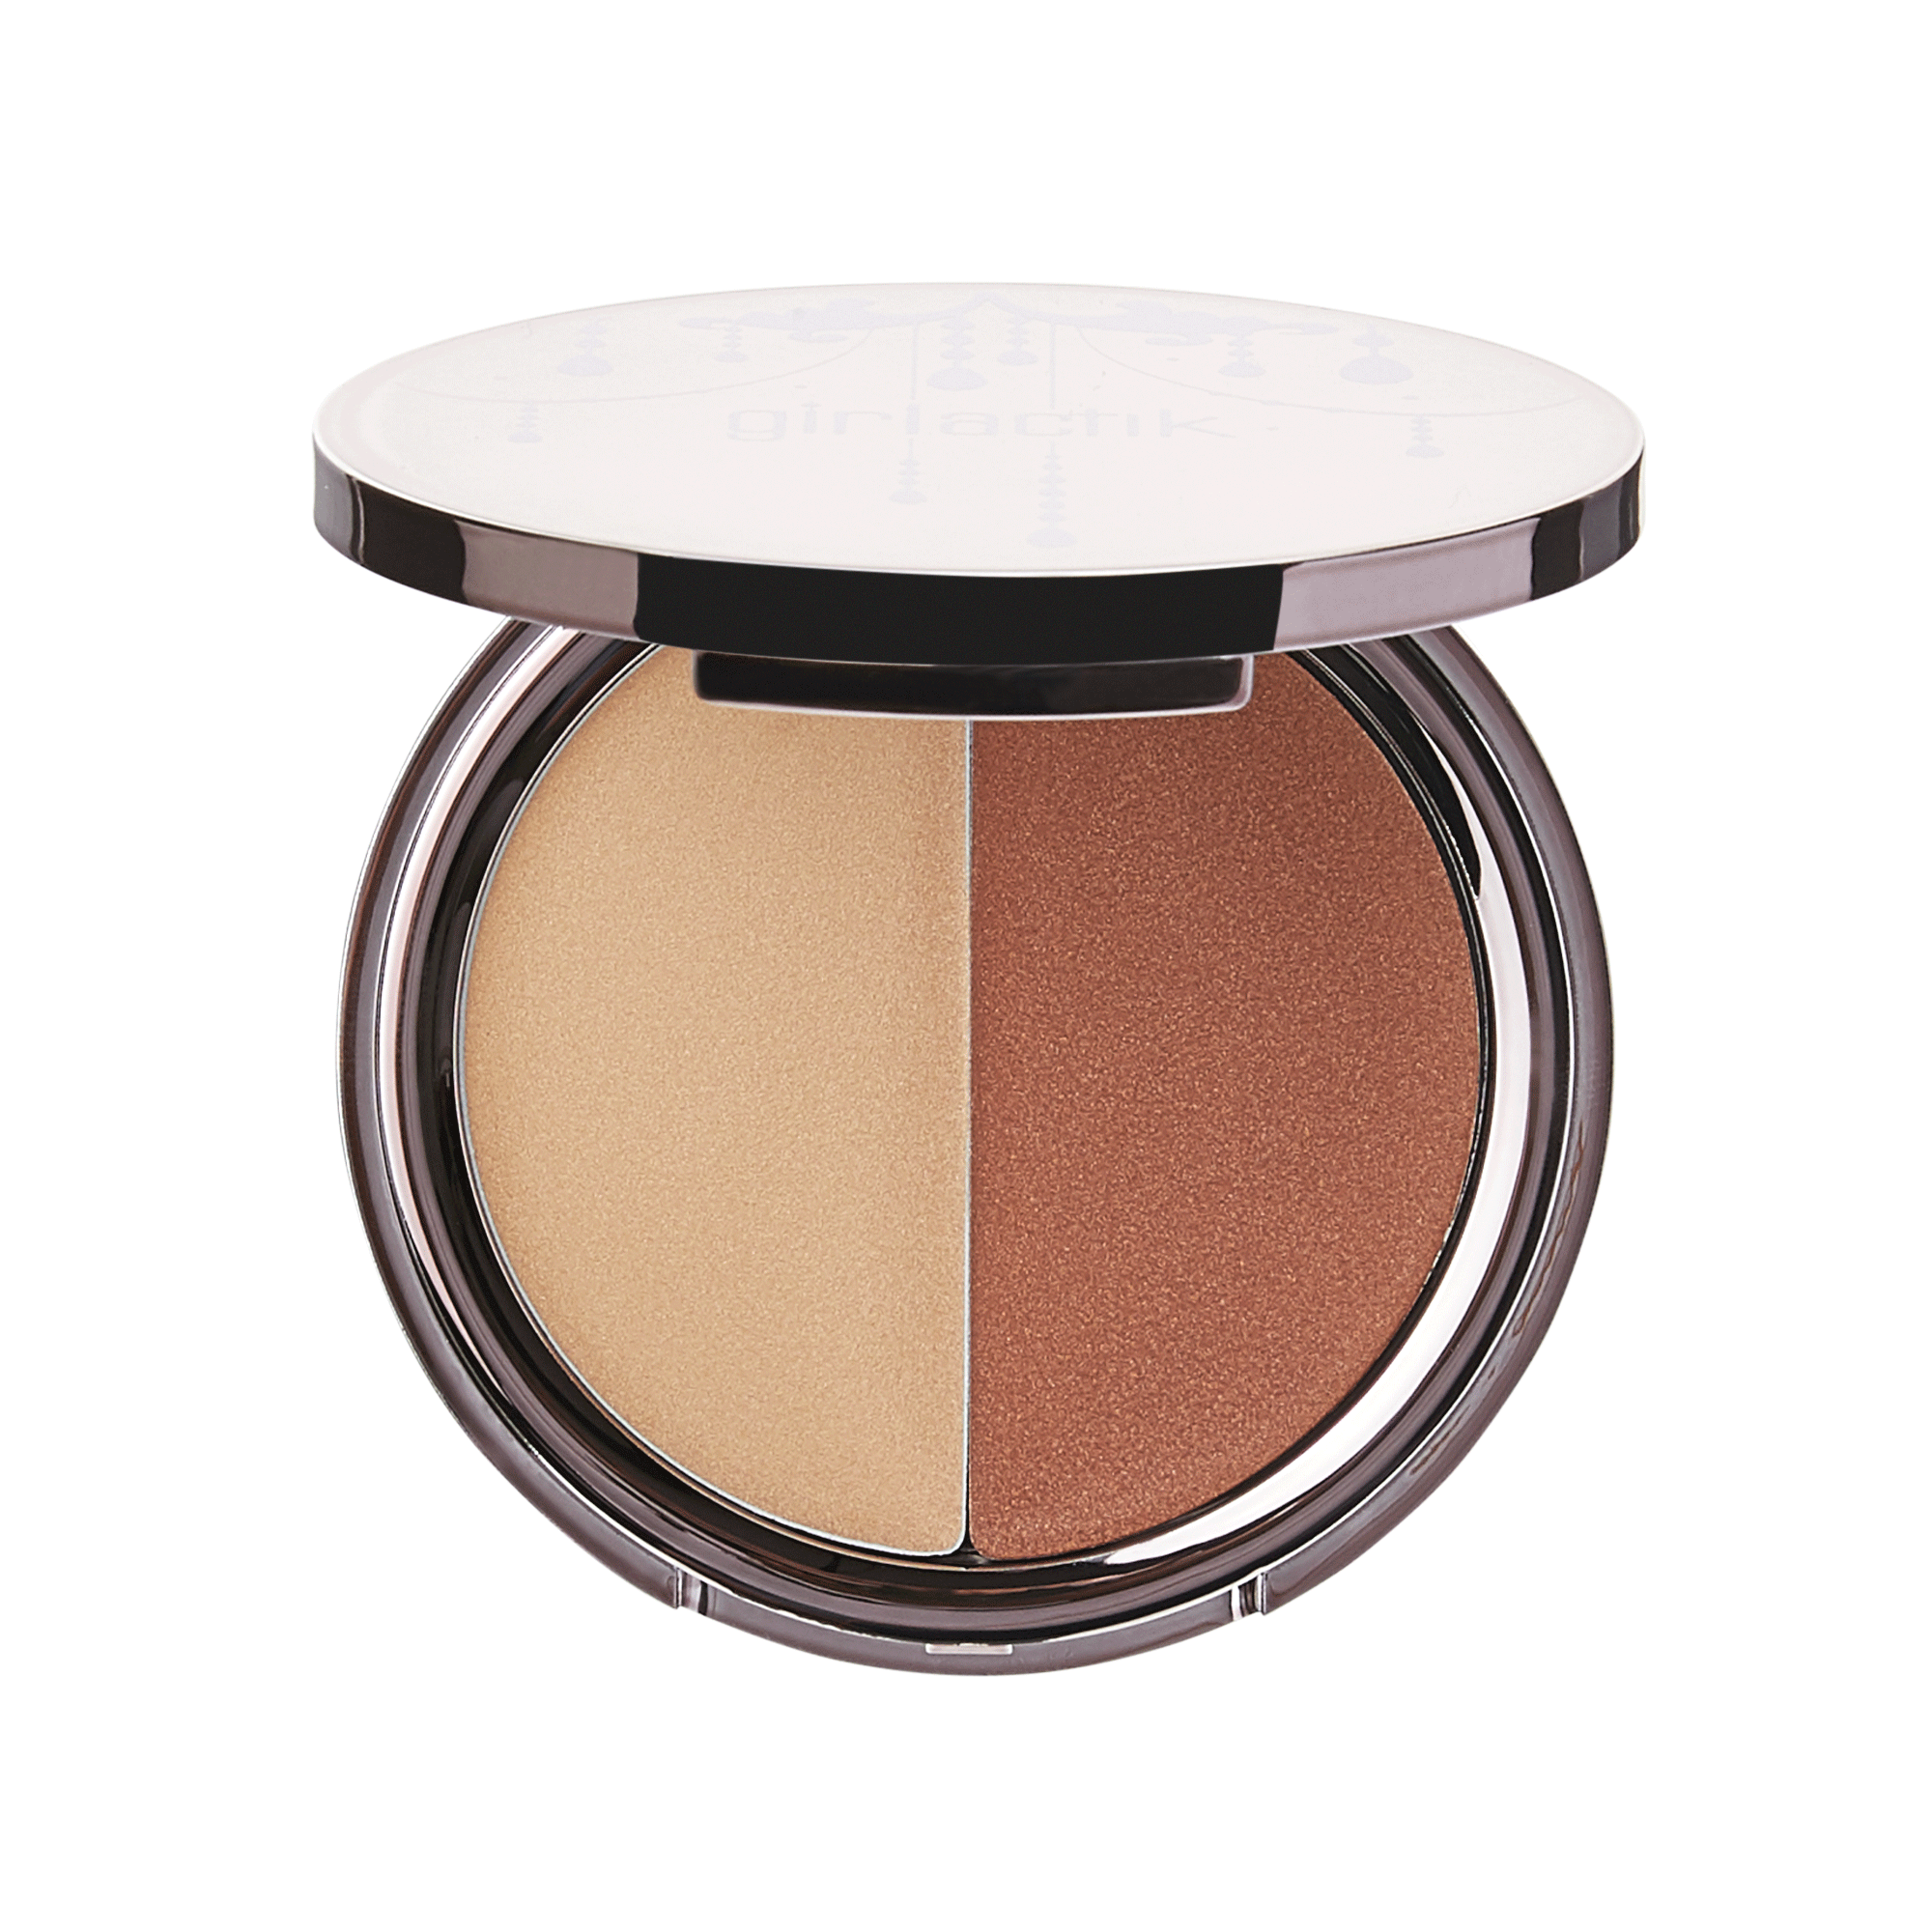 Skin Glow Duo Highlighter